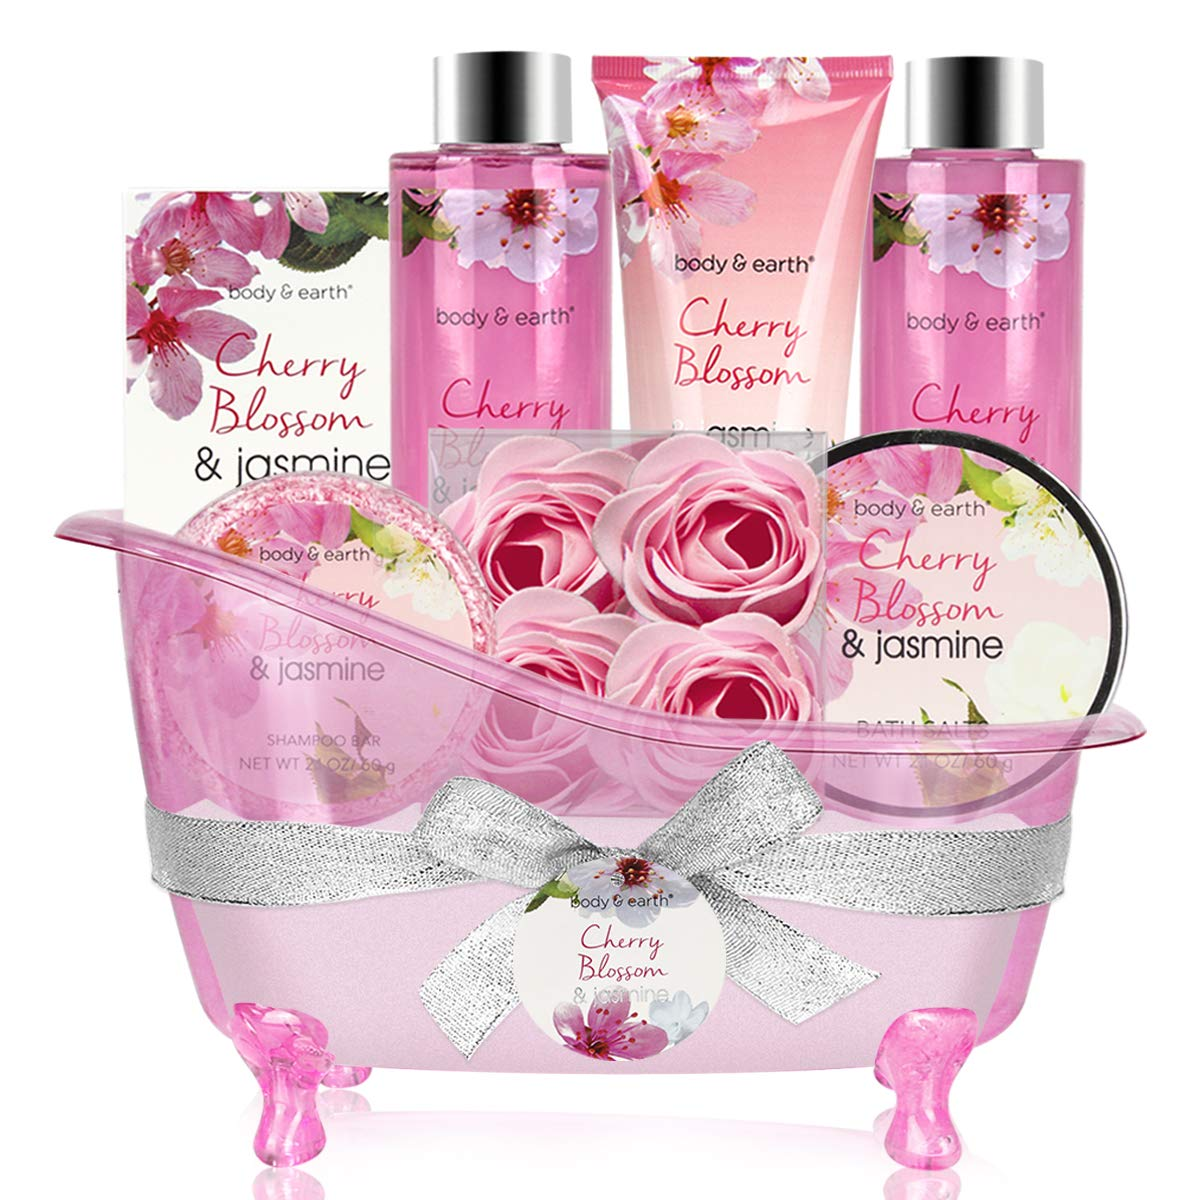 Bath Set for Women - Body&Earth 8 Pcs Gift Basket with Cherry Blossom & Jasmine Scent, Includes Bubble Bath, Shower Gel, Body & Hand Lotion, Bath Salts and More, Perfect Gifts Set for Home Relaxation by BODY & EARTH